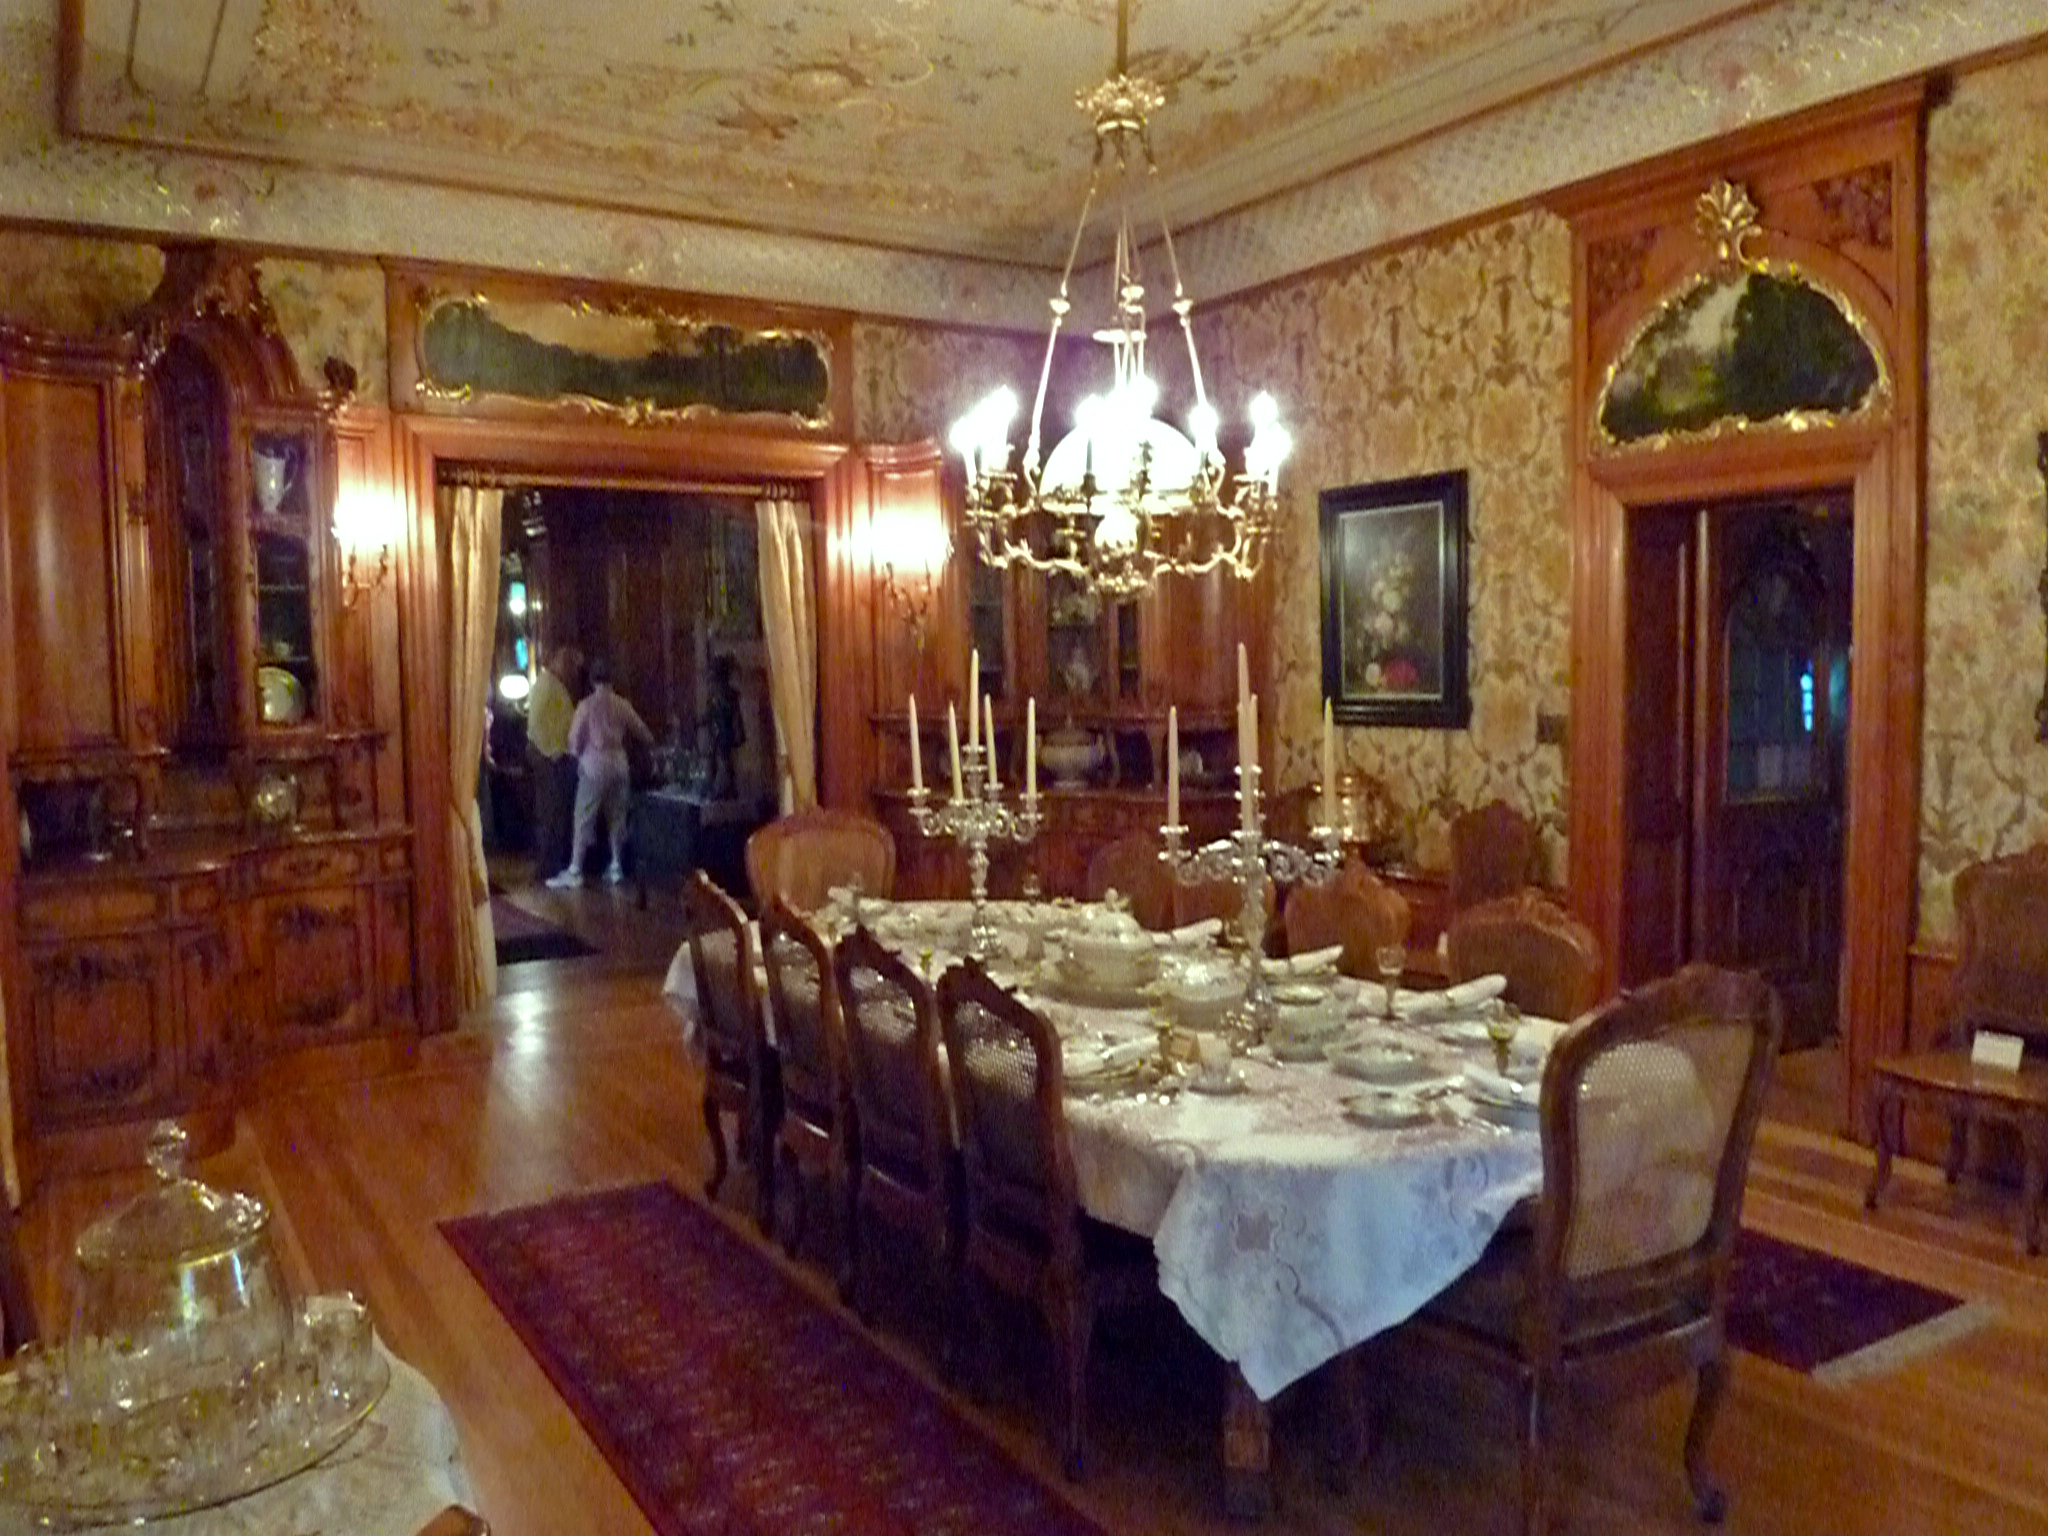 File:Dining room - Pabst Mansion jpg - Wikimedia Commons